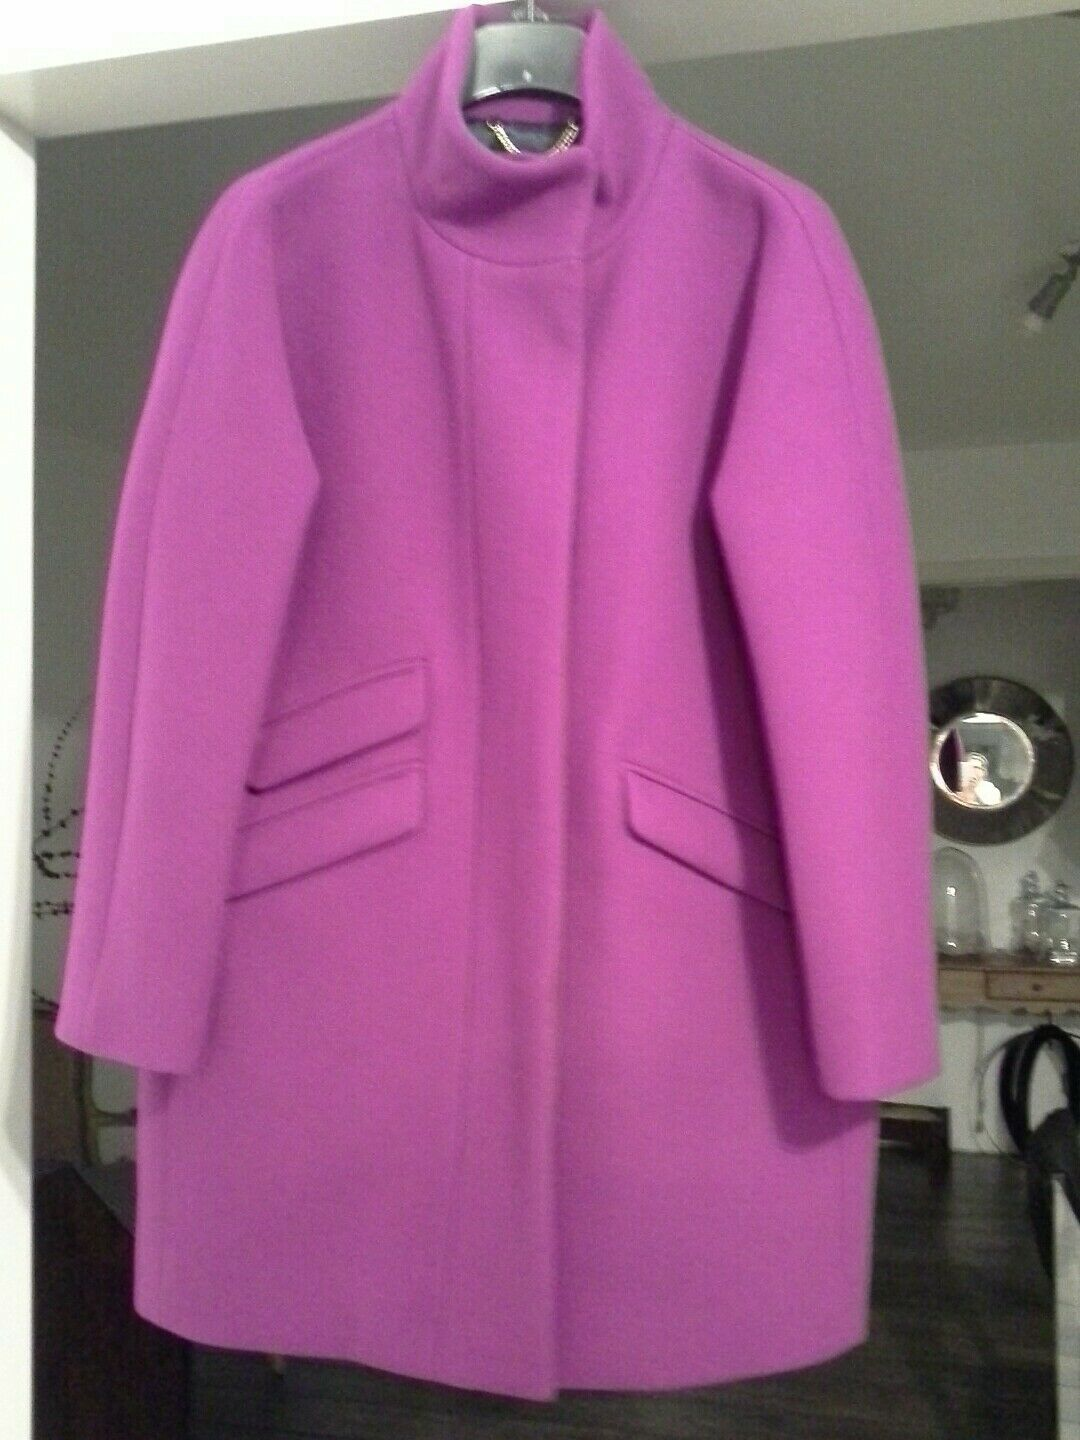 J.Crew Petite Cocoon Coat in Italian Stadium-cloth Wool Bright Plum 10P